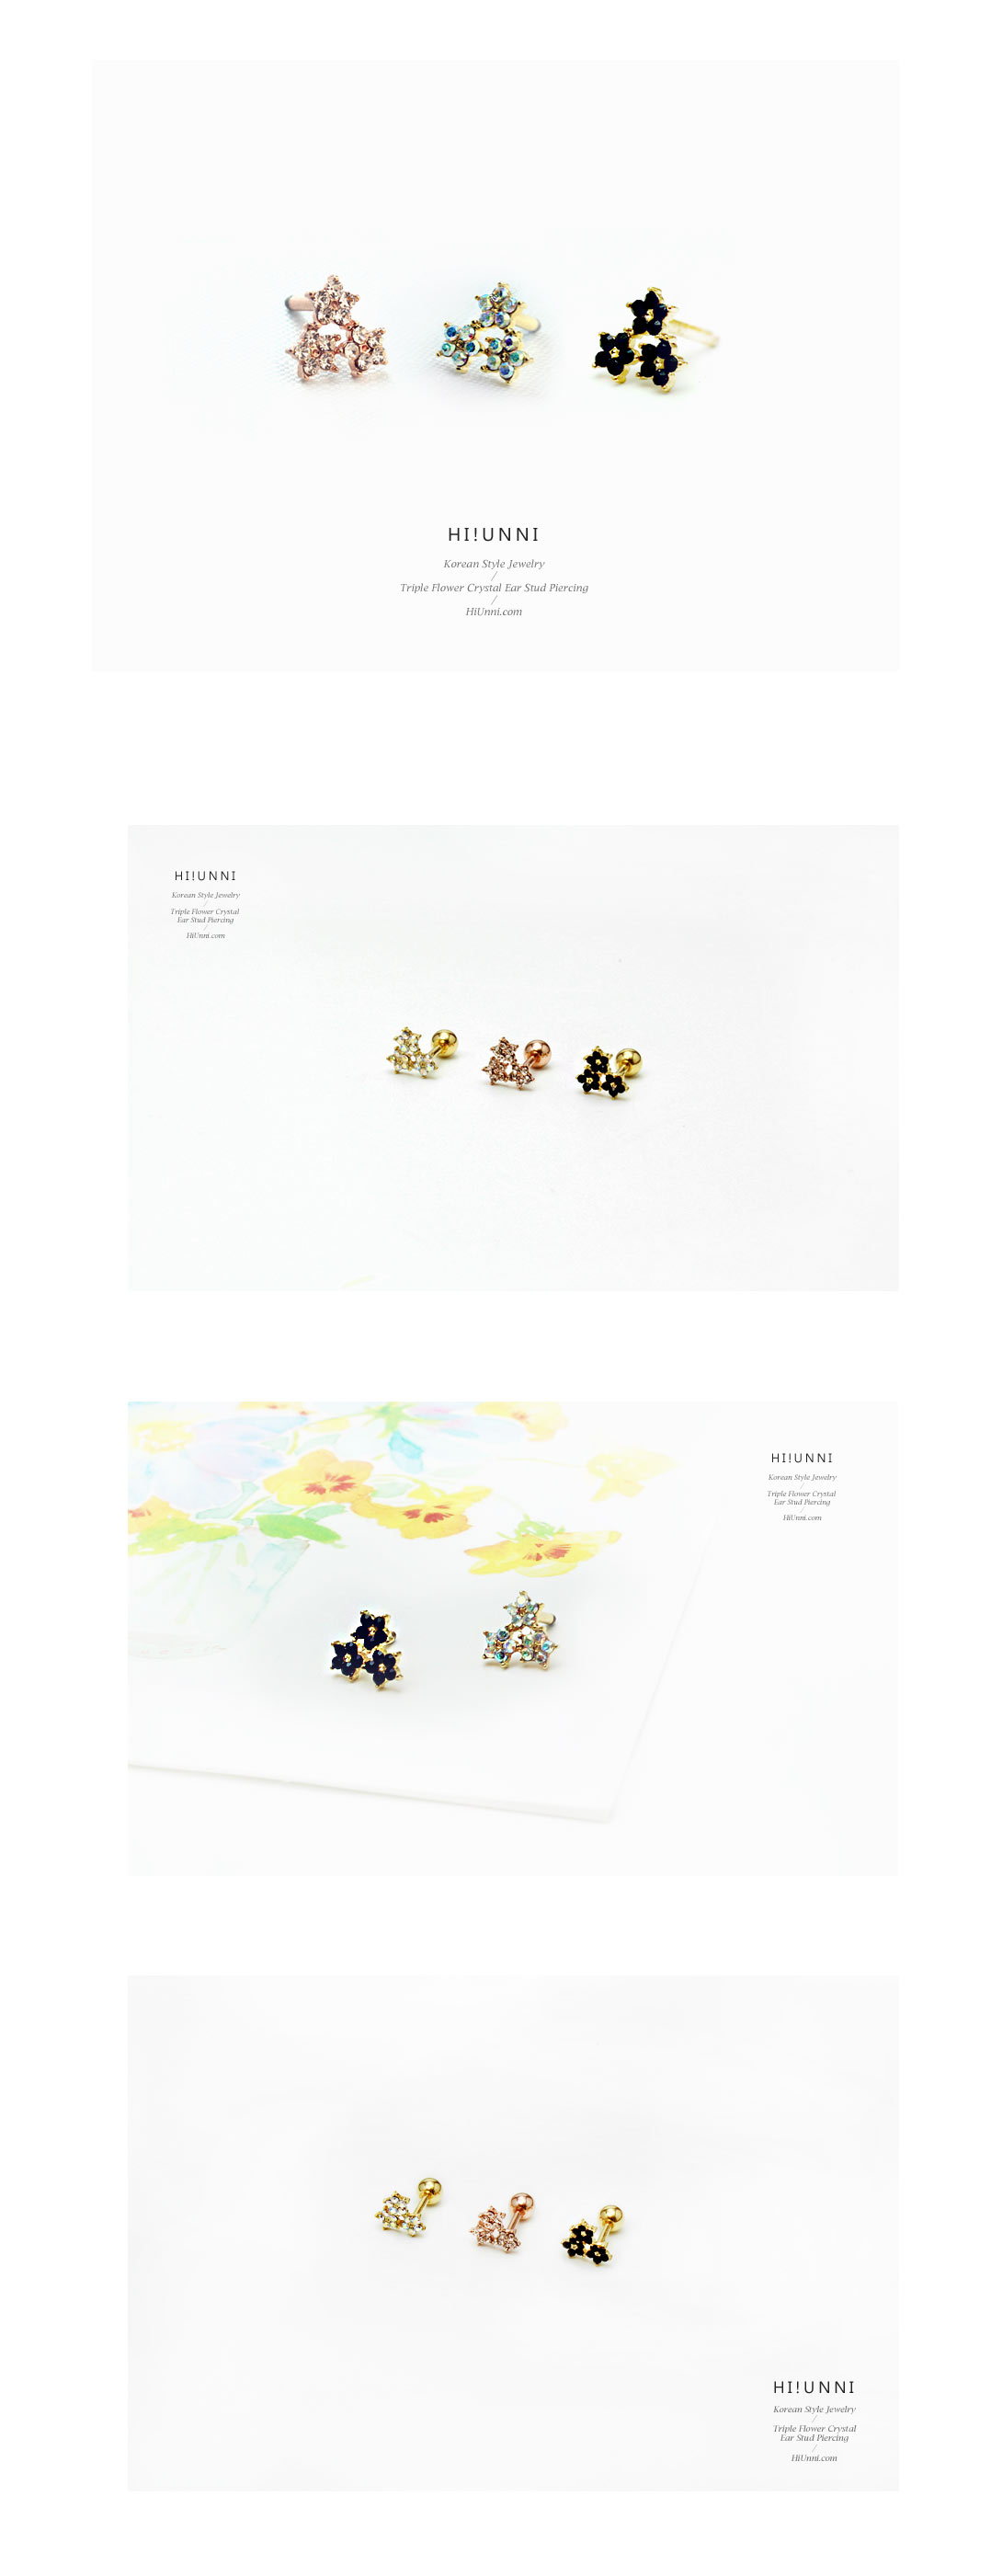 ear_studs_piercing_Cartilage_earrings_16g_316l_Surgical_Stainless_Steel_korean_asian_style_jewelry_barbell_AB_flower_crystal_4